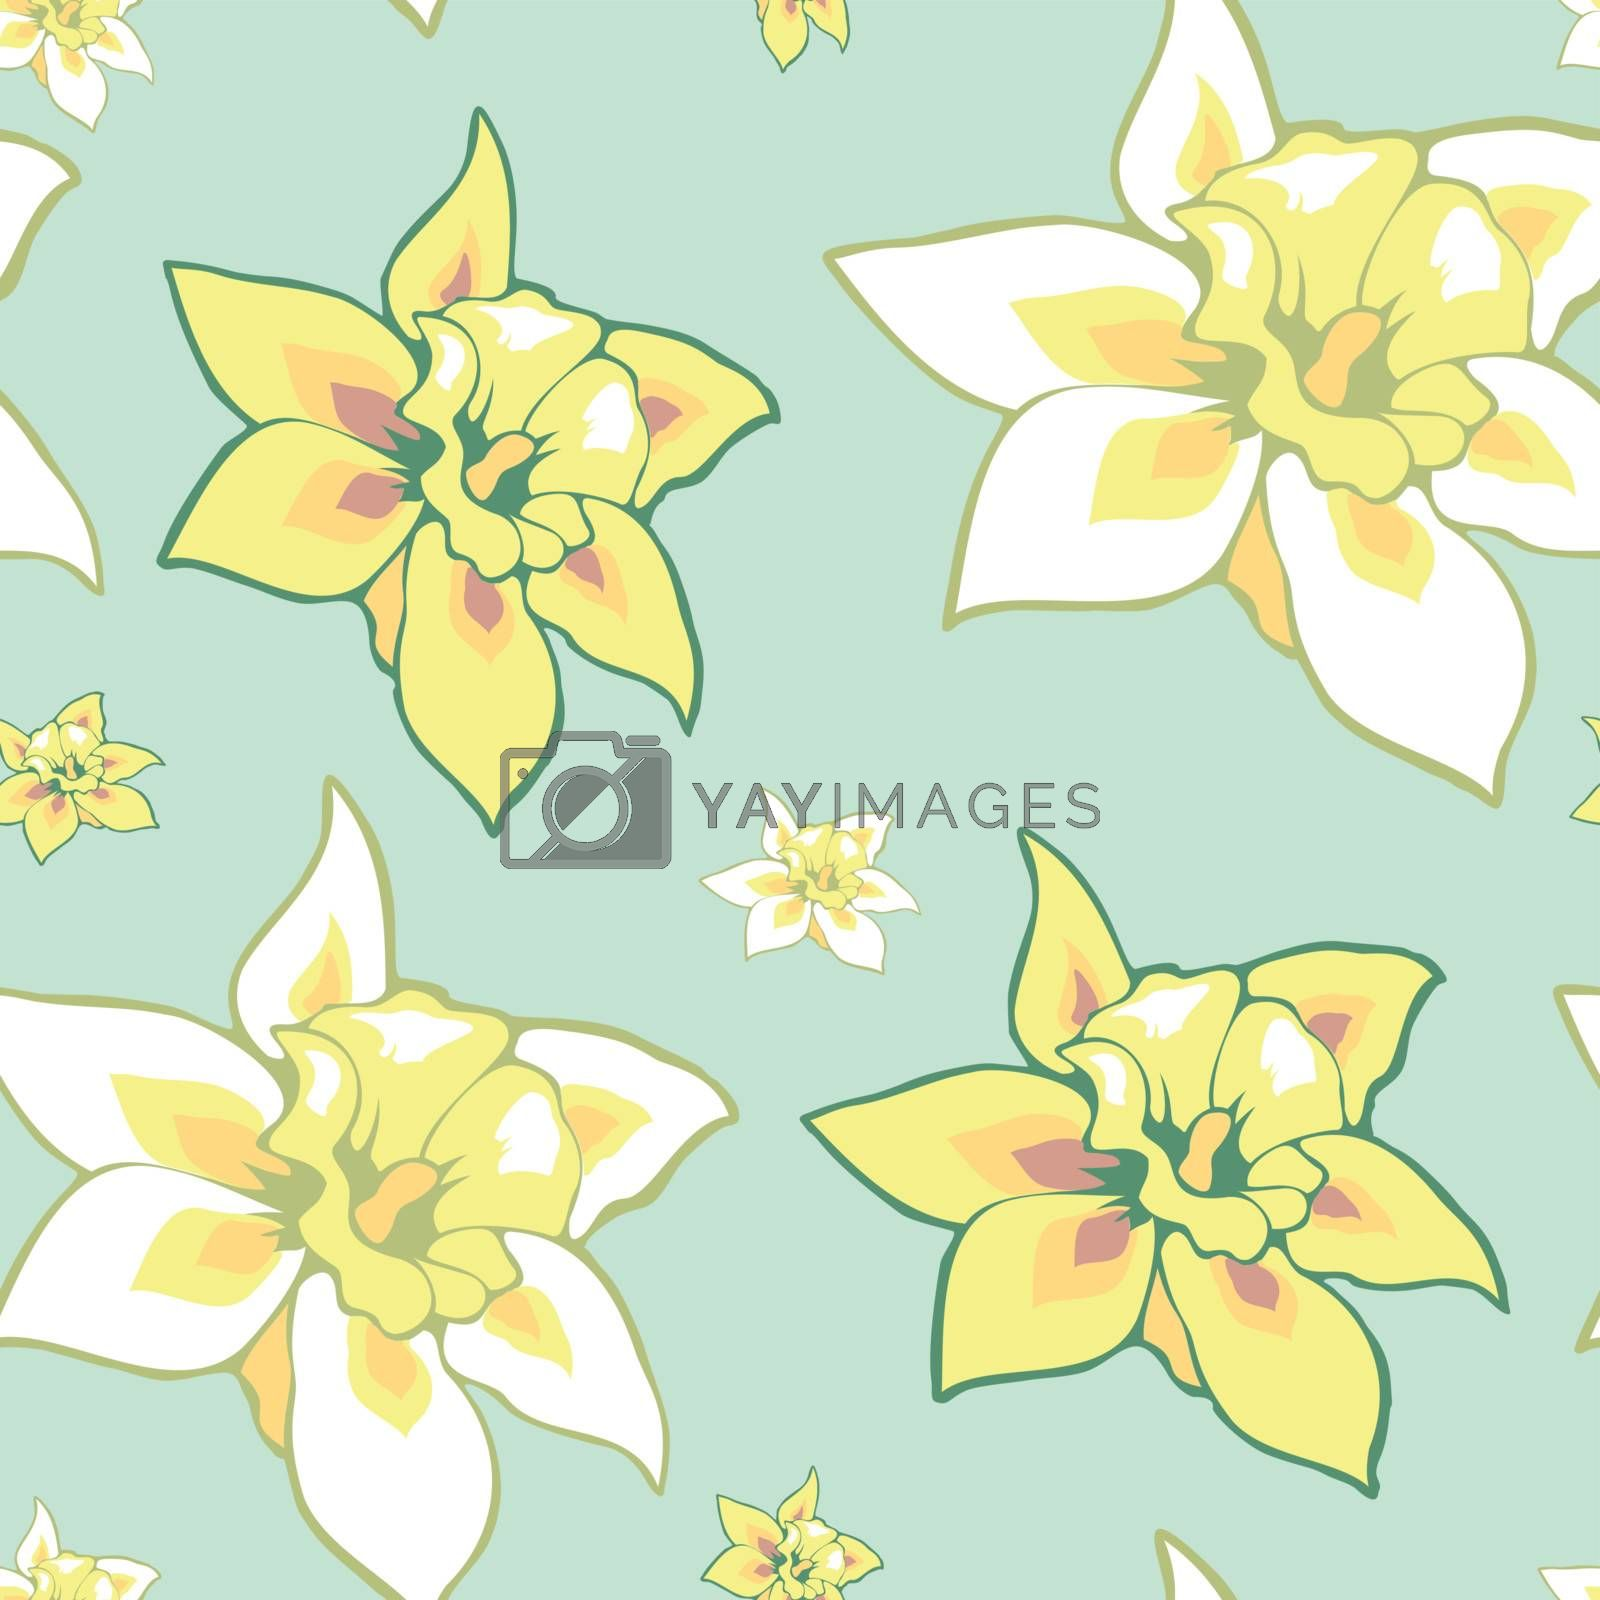 Seamless vector retro pattern with flowers  EPS 10 vector file included